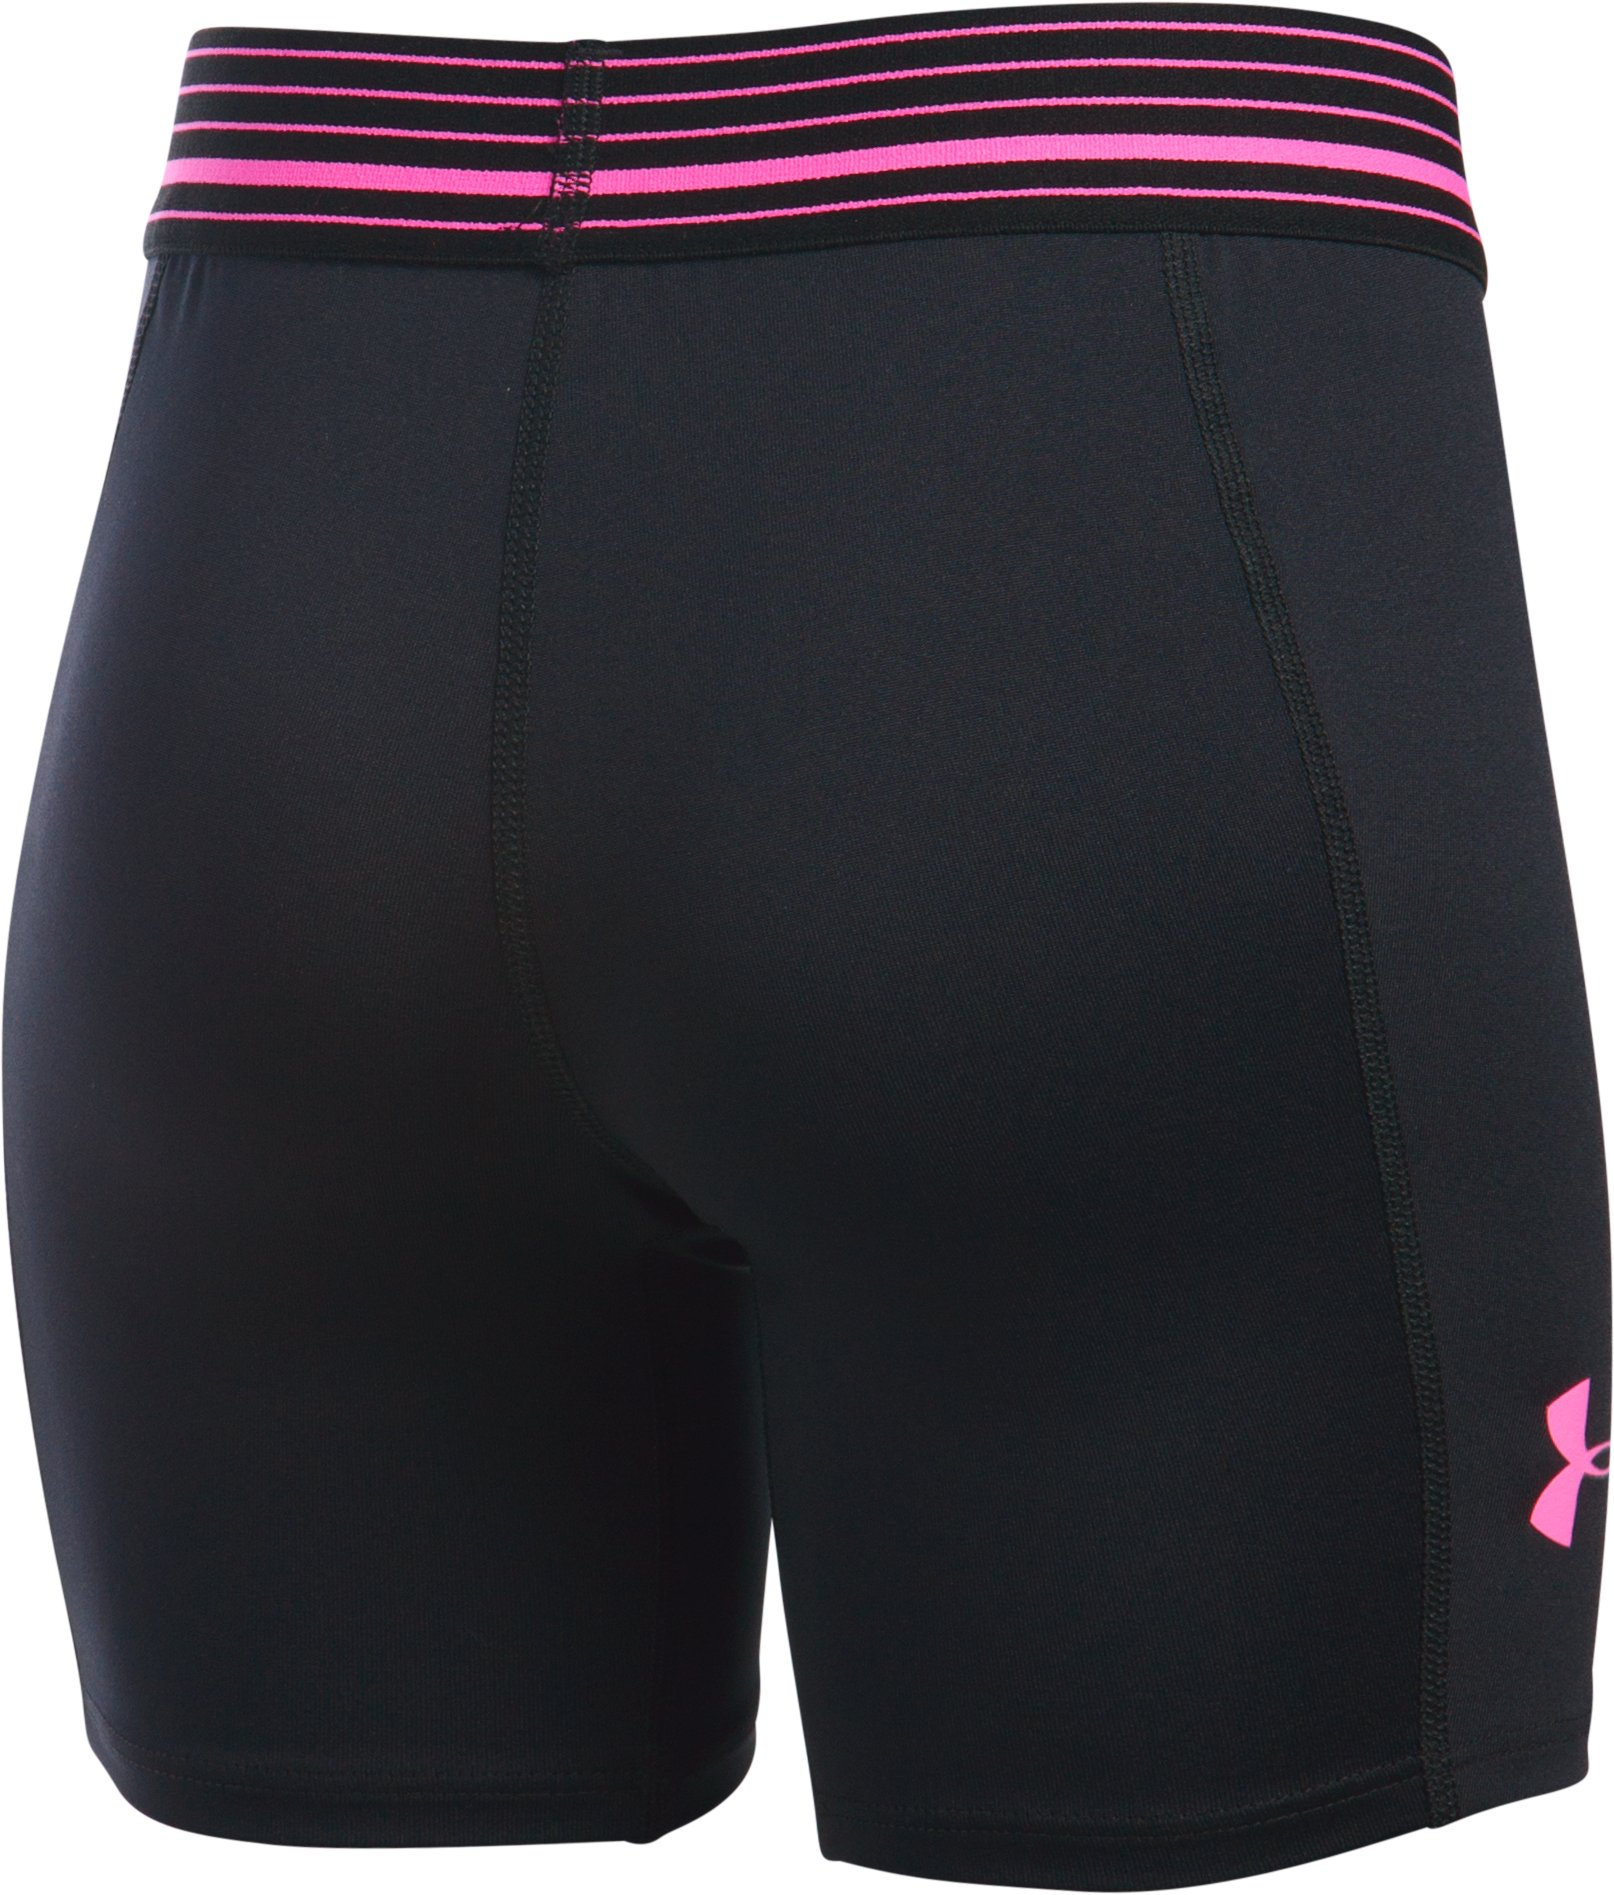 "Girls' UA HeatGear® Armour 5"" Short, Black ,"